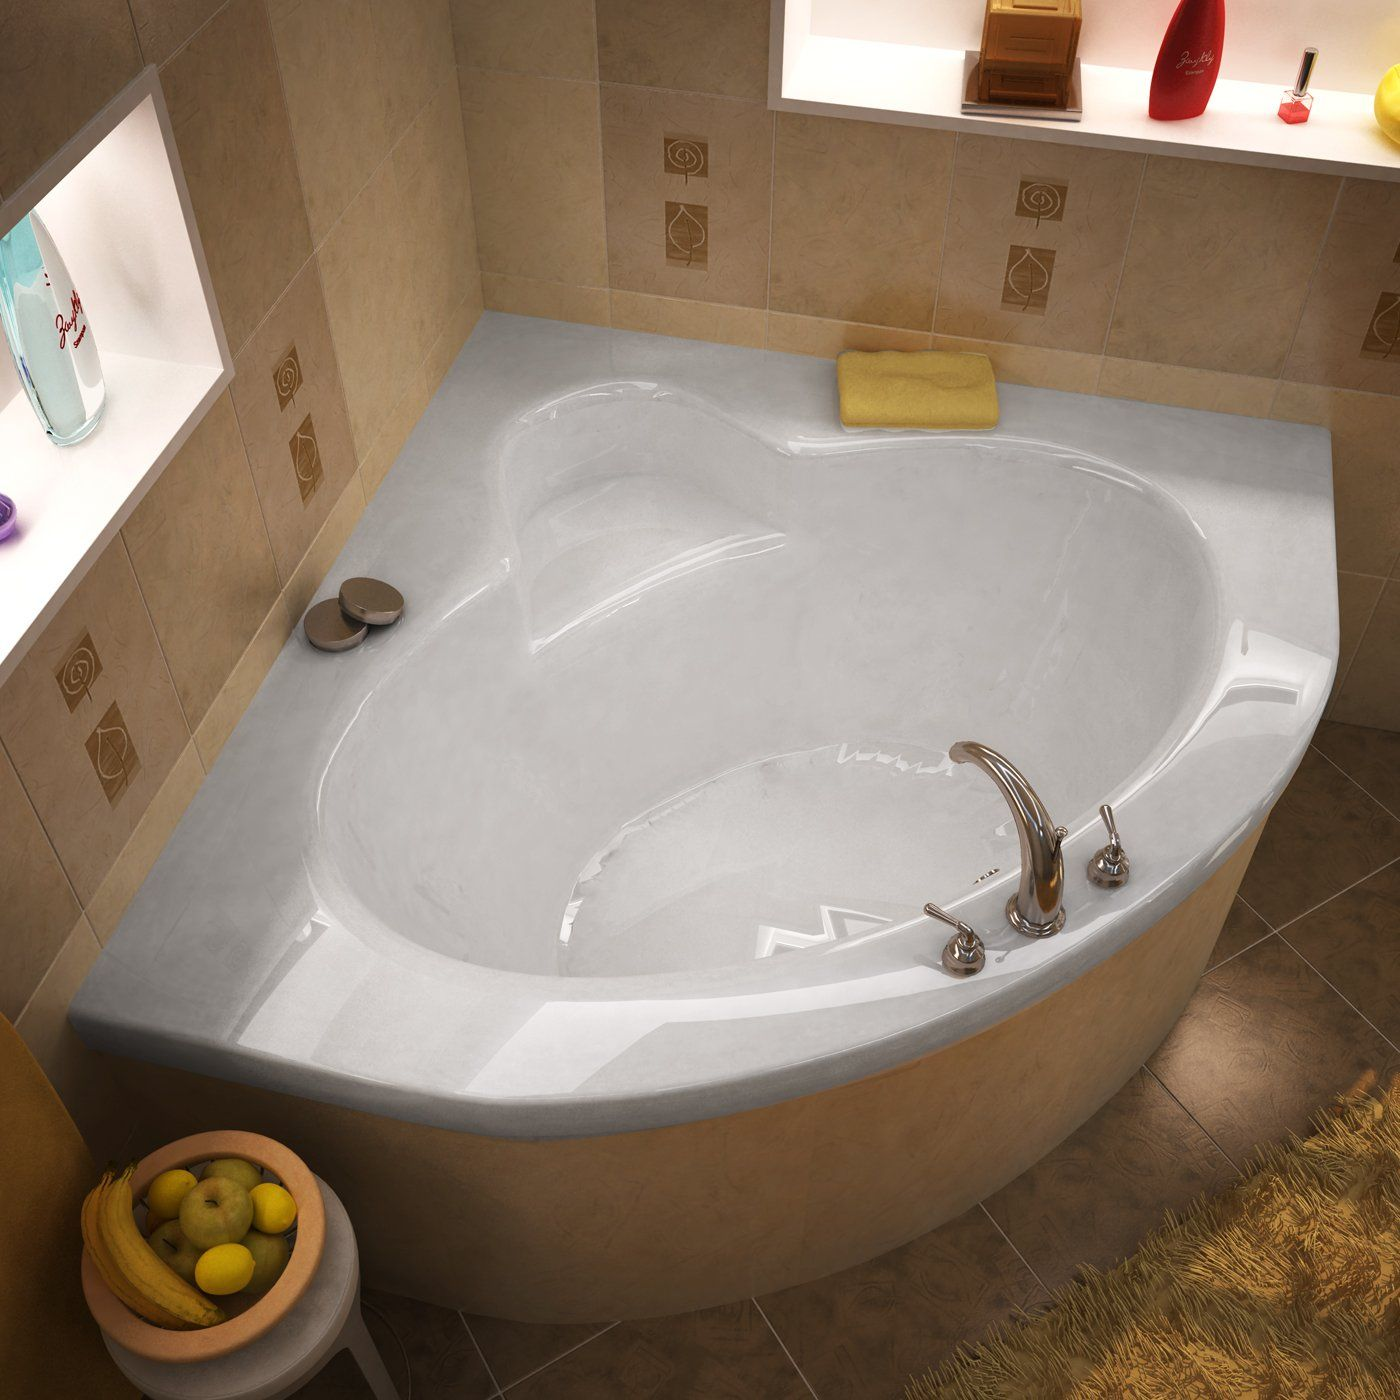 tile lay out patterns for around whirlpools tubs | Bathroom, Amusing ...